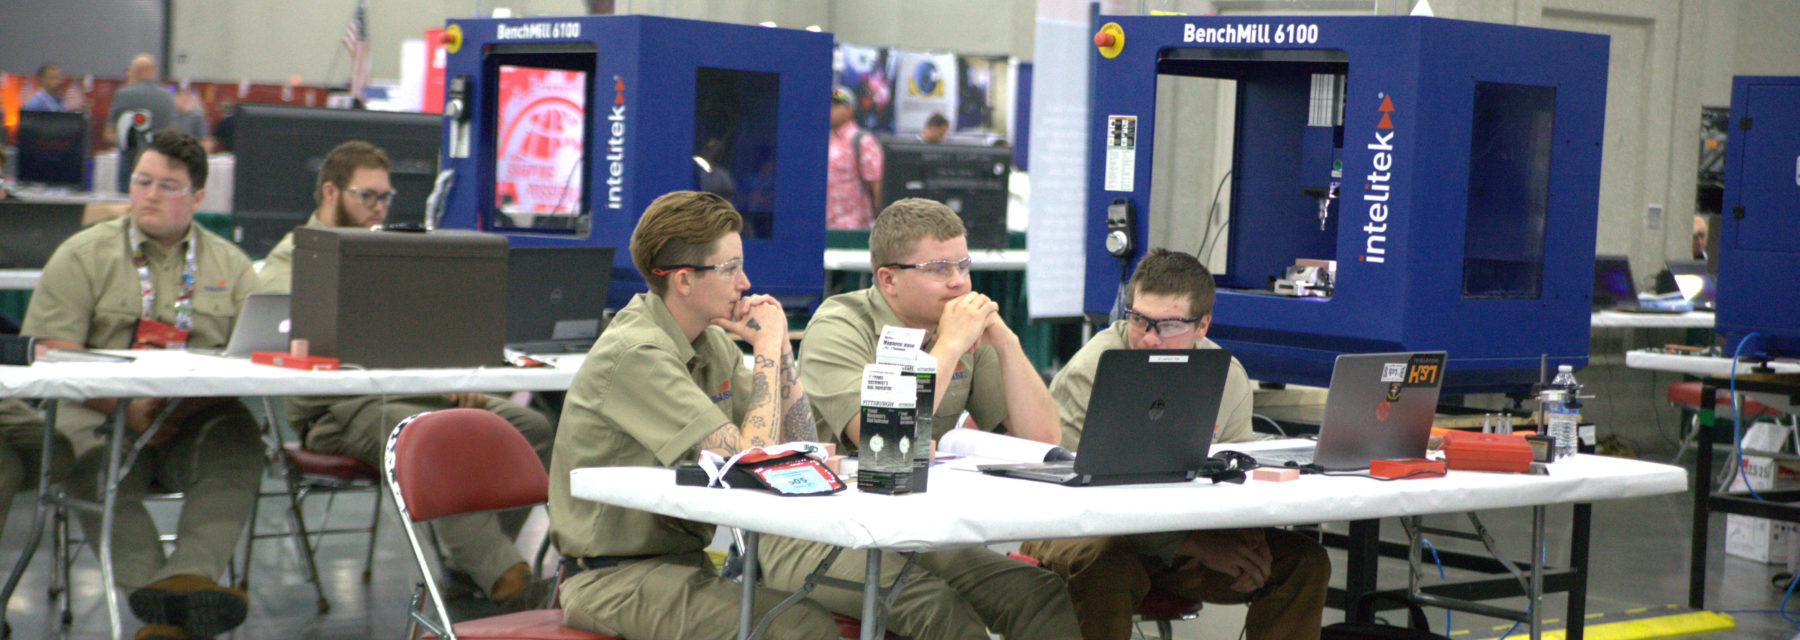 SkillsUSA Wyoming